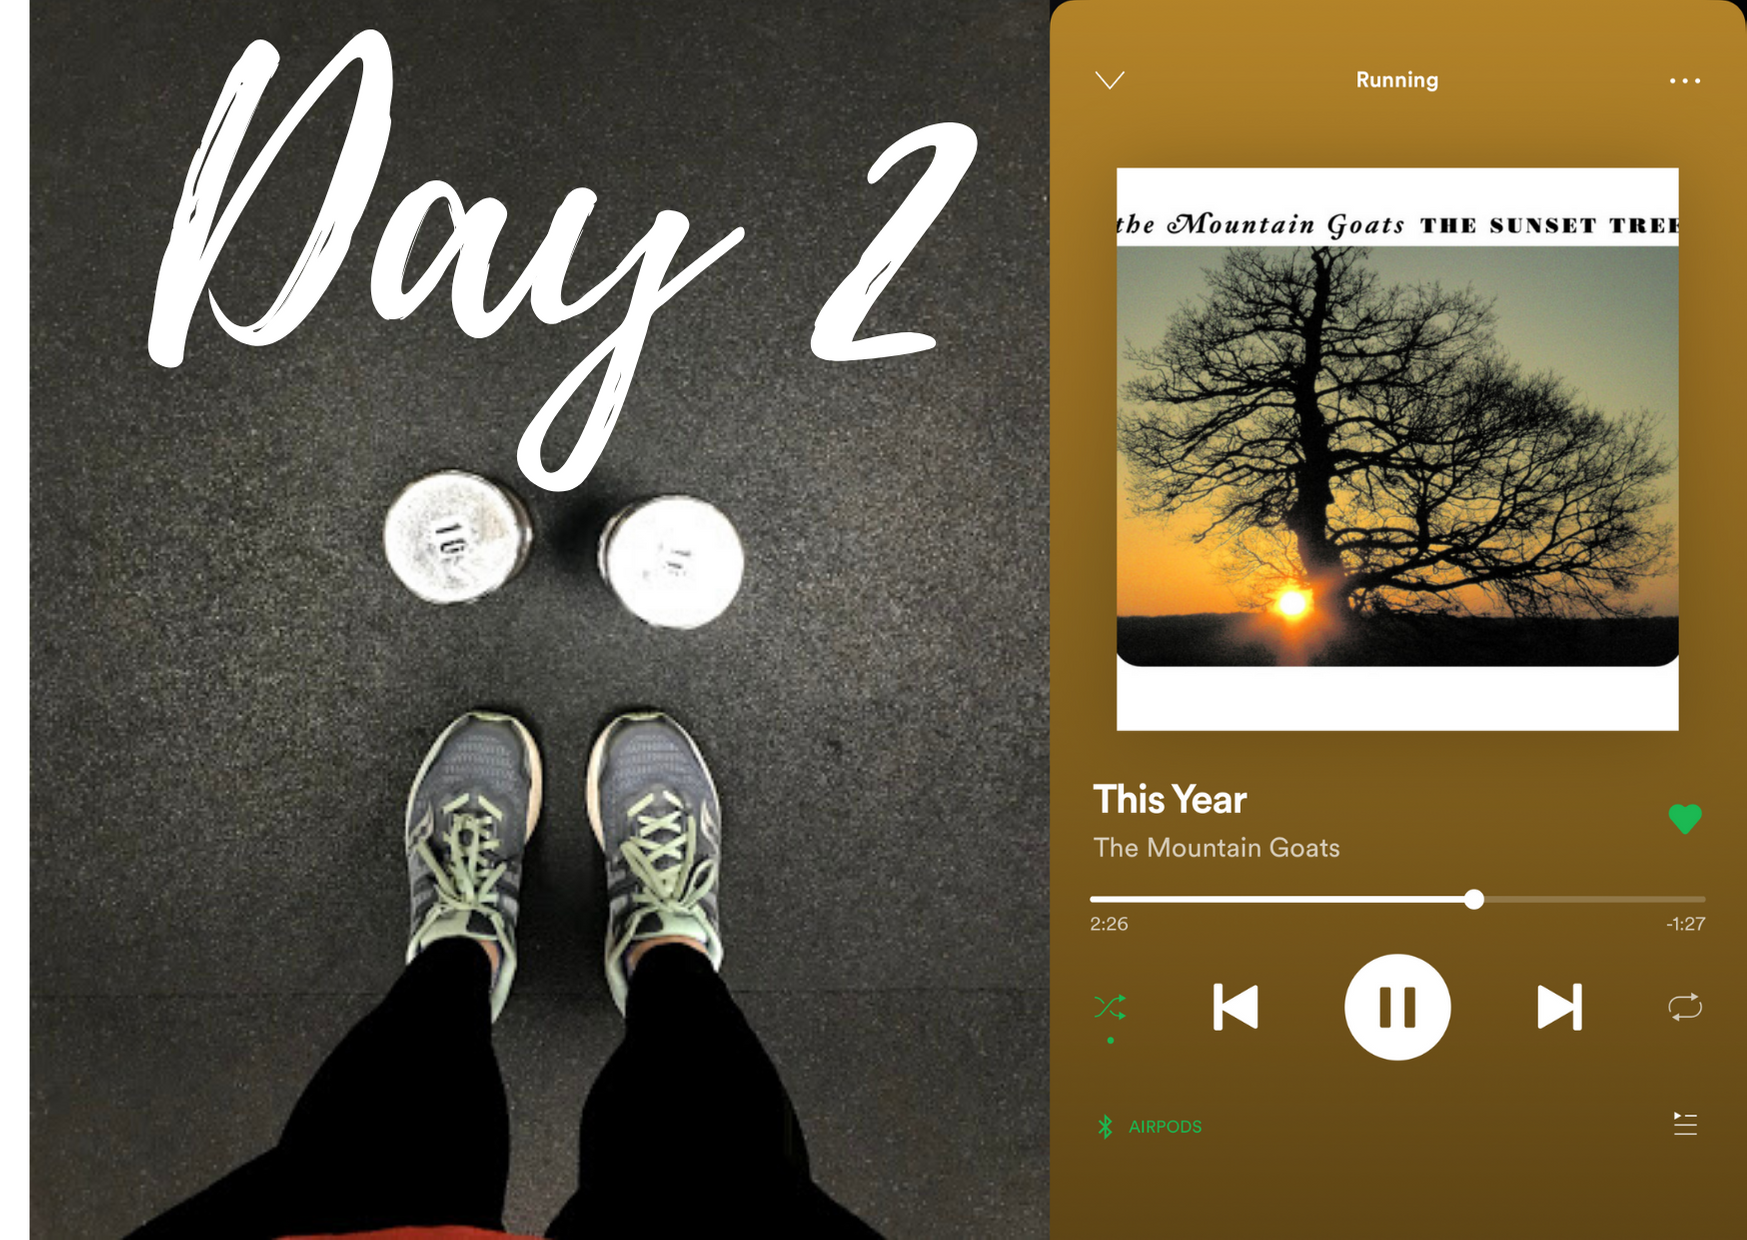 _Day 2